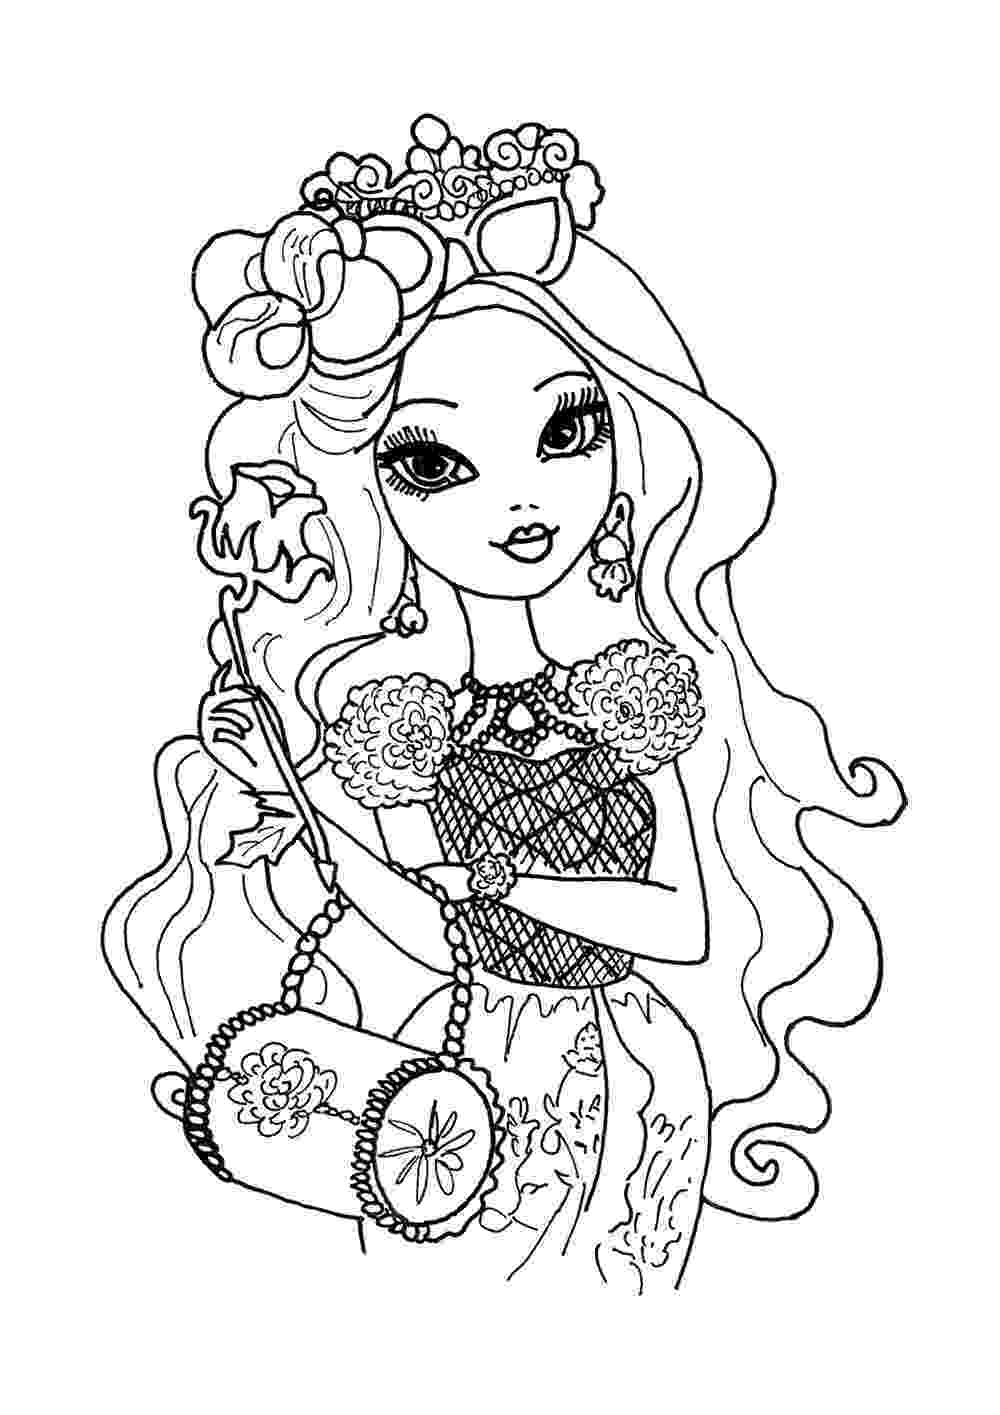 coloring book pages to print free disney coloring pages to download and print for free book coloring print to pages free